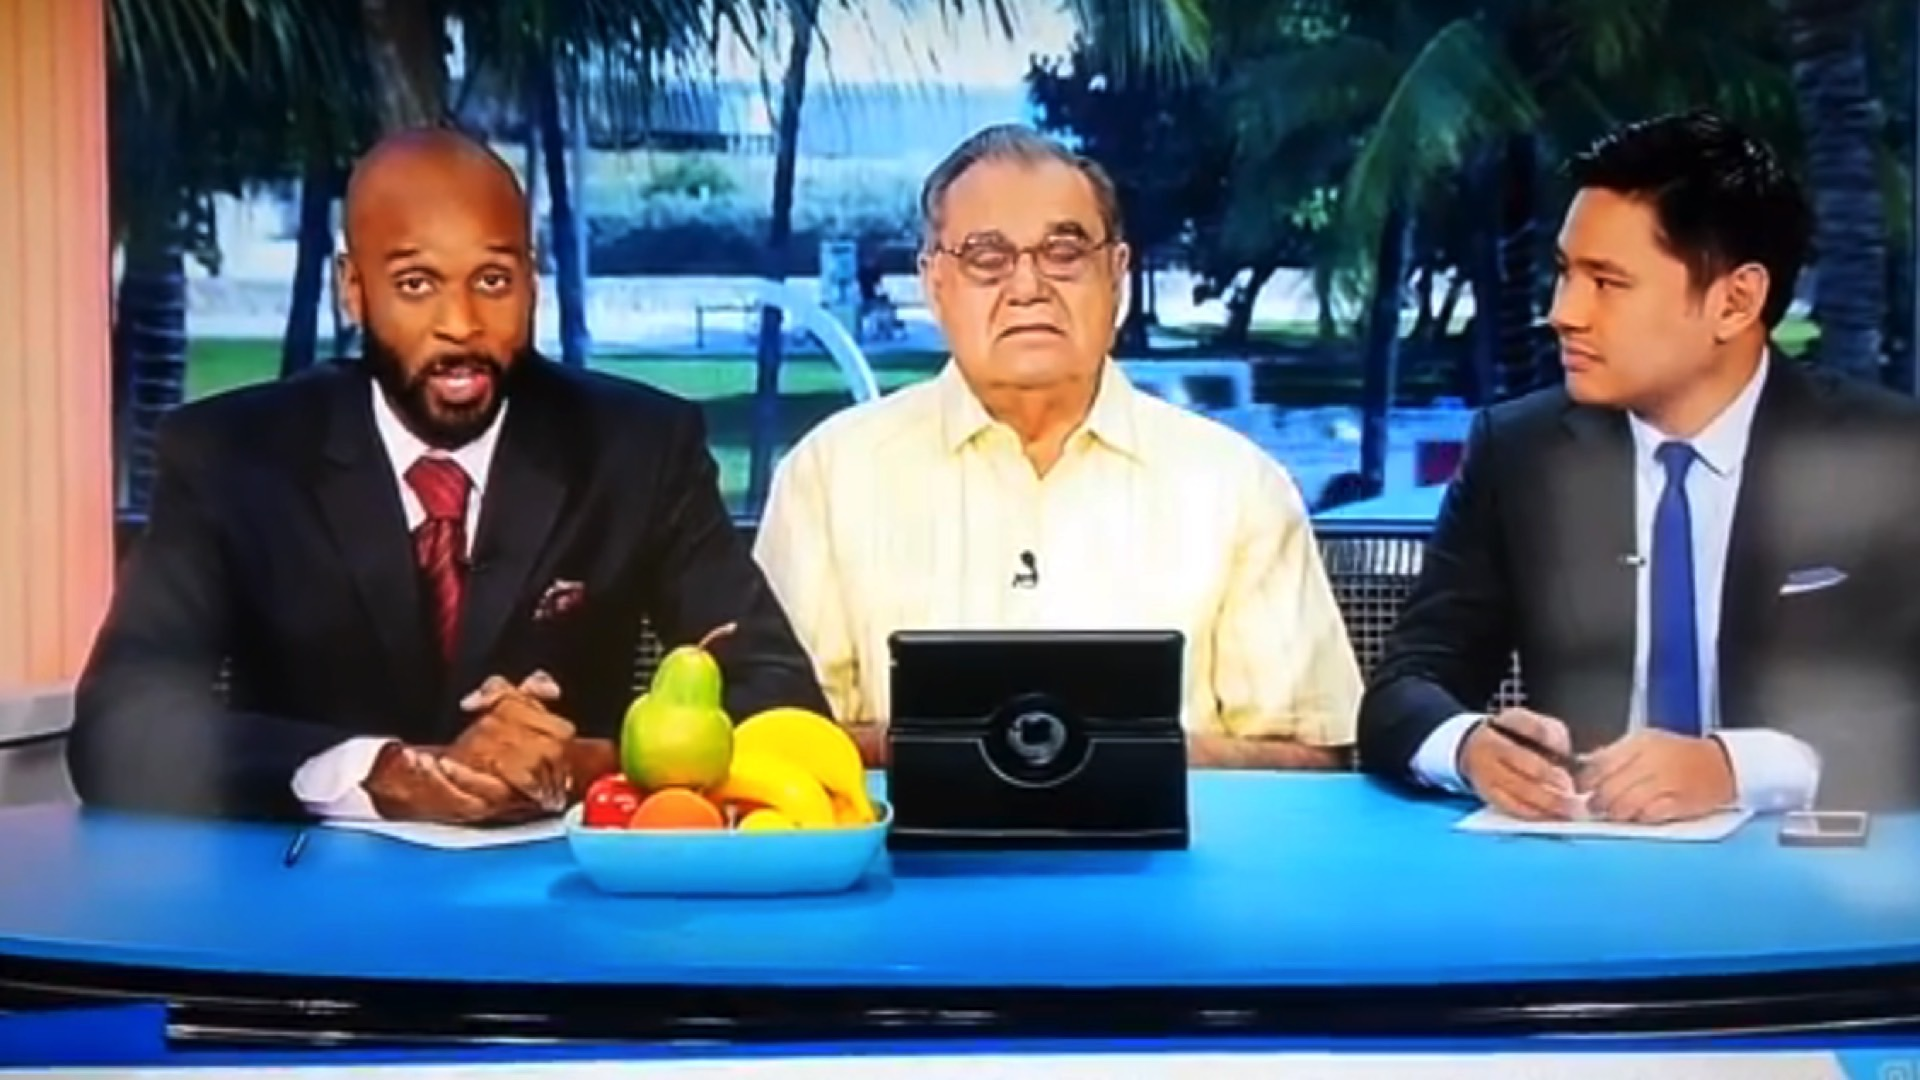 bomani-jones-120914-FTR-YT.jpeg